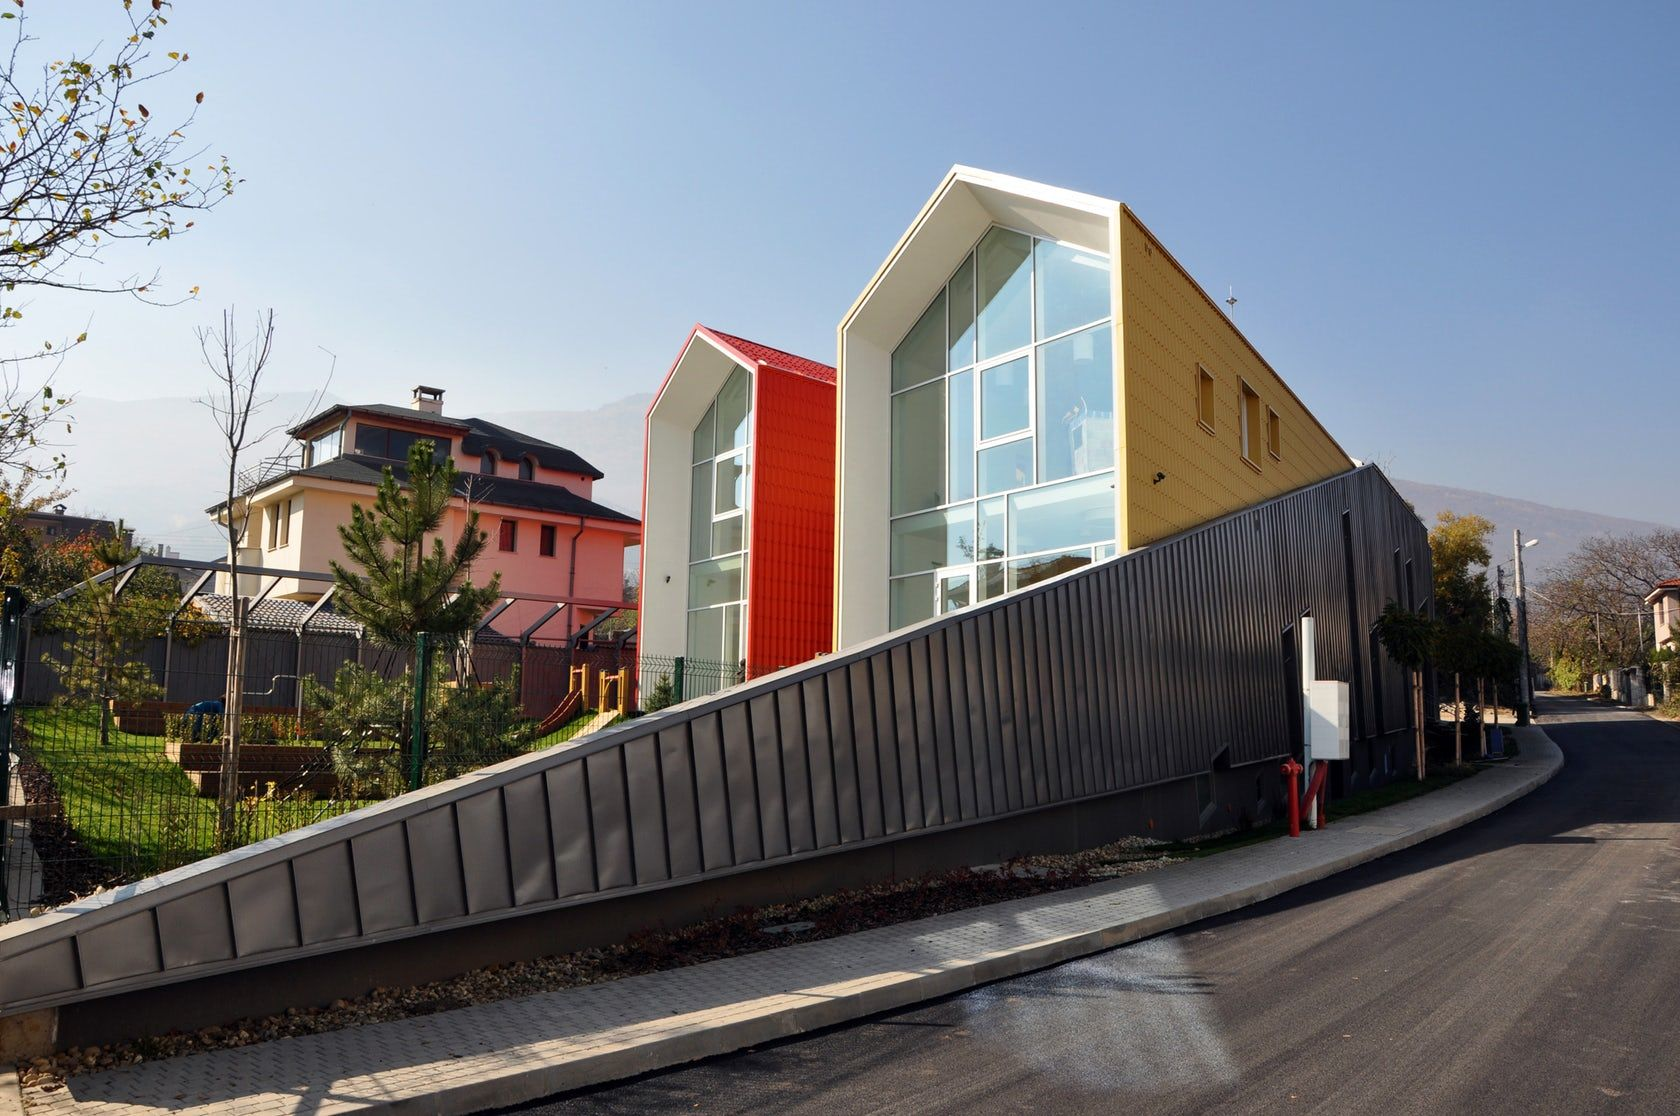 Kita Is A Private Kindergarten Built In Dragalevtzi Neighborhood Sofia The Concept Idea For The Kindergarte Residential Architecture Architecture Red Houses